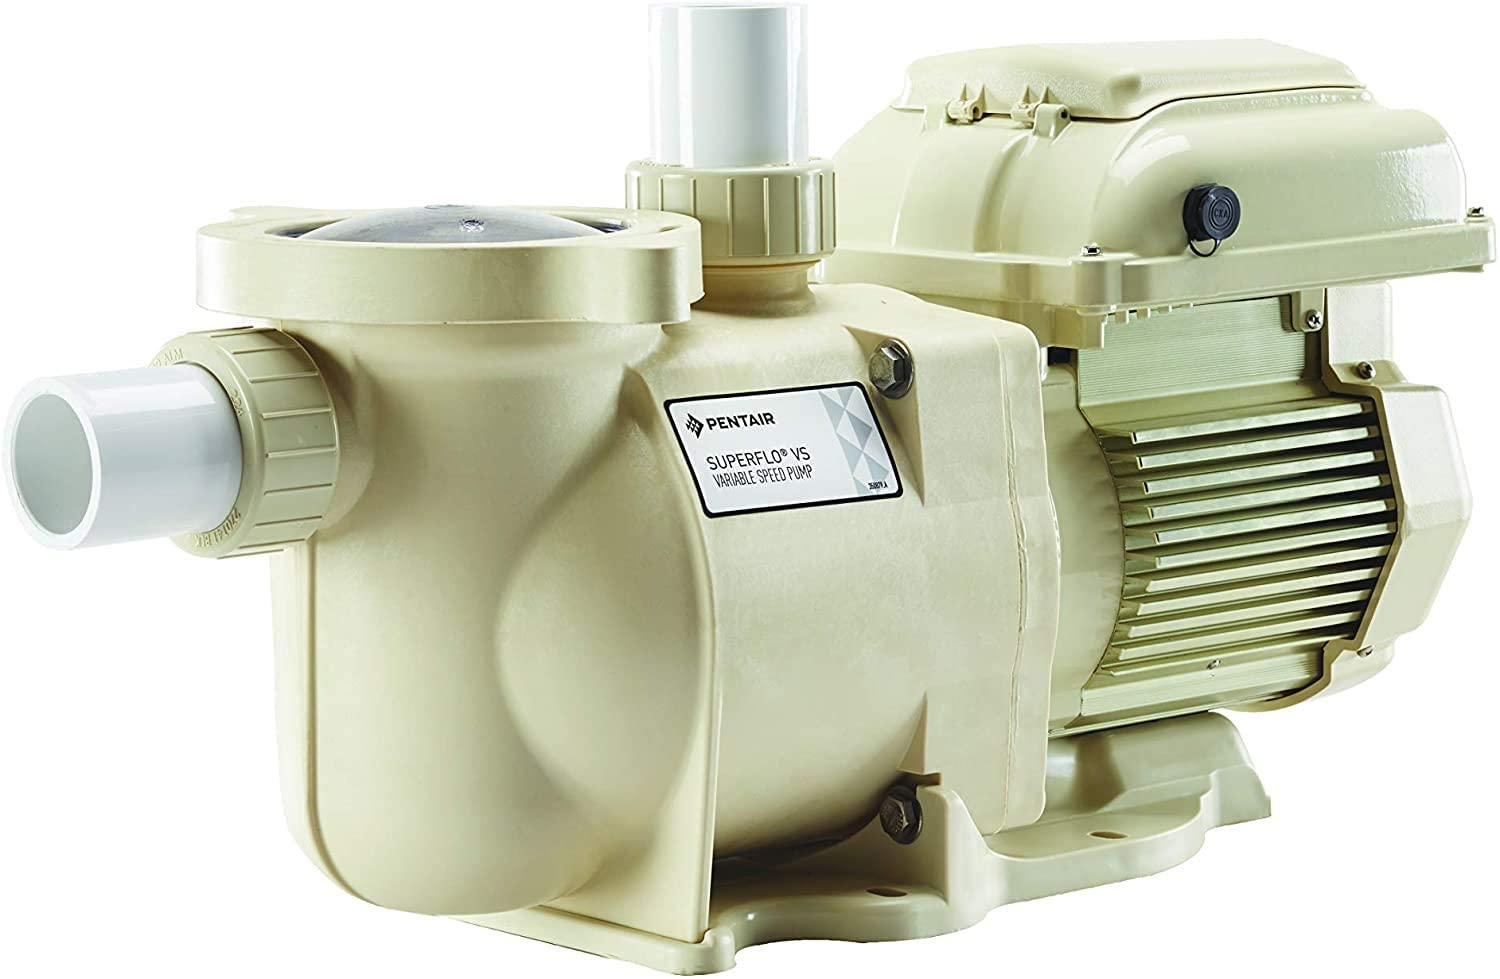 Best Variable Speed Pool Pumps - Product Reviews and Buyer's Guide 9